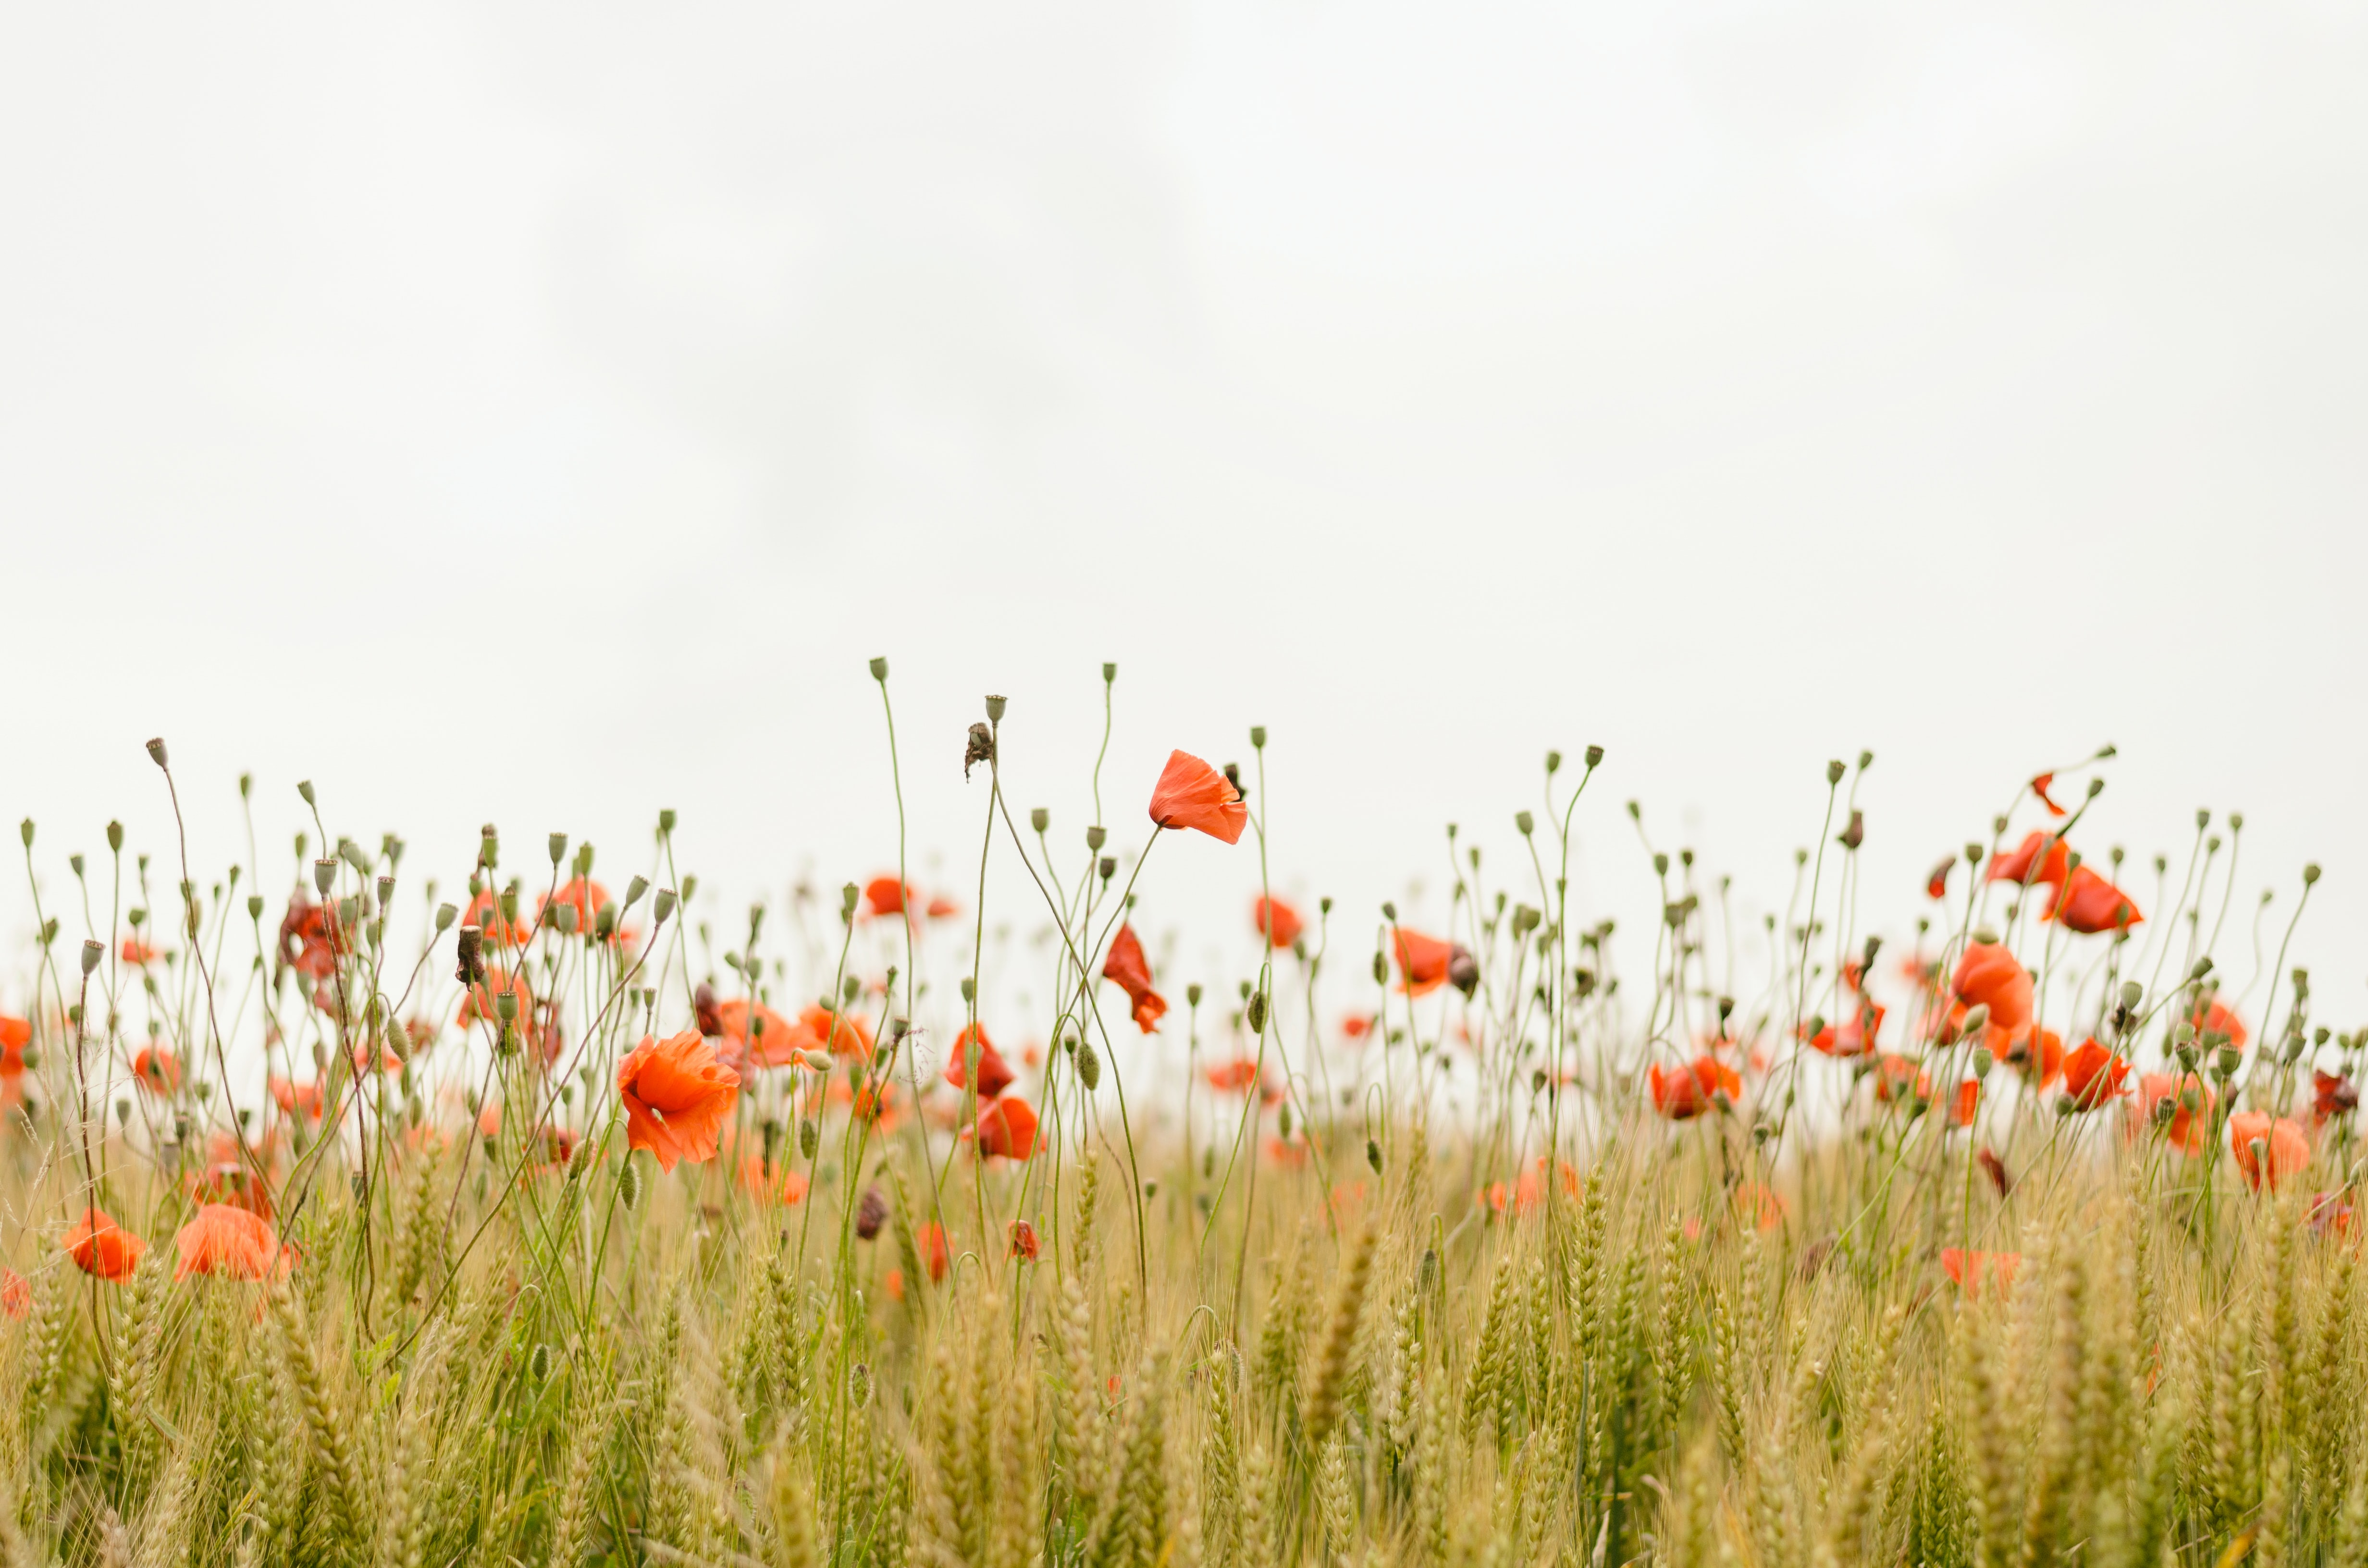 Orange poppies in a field